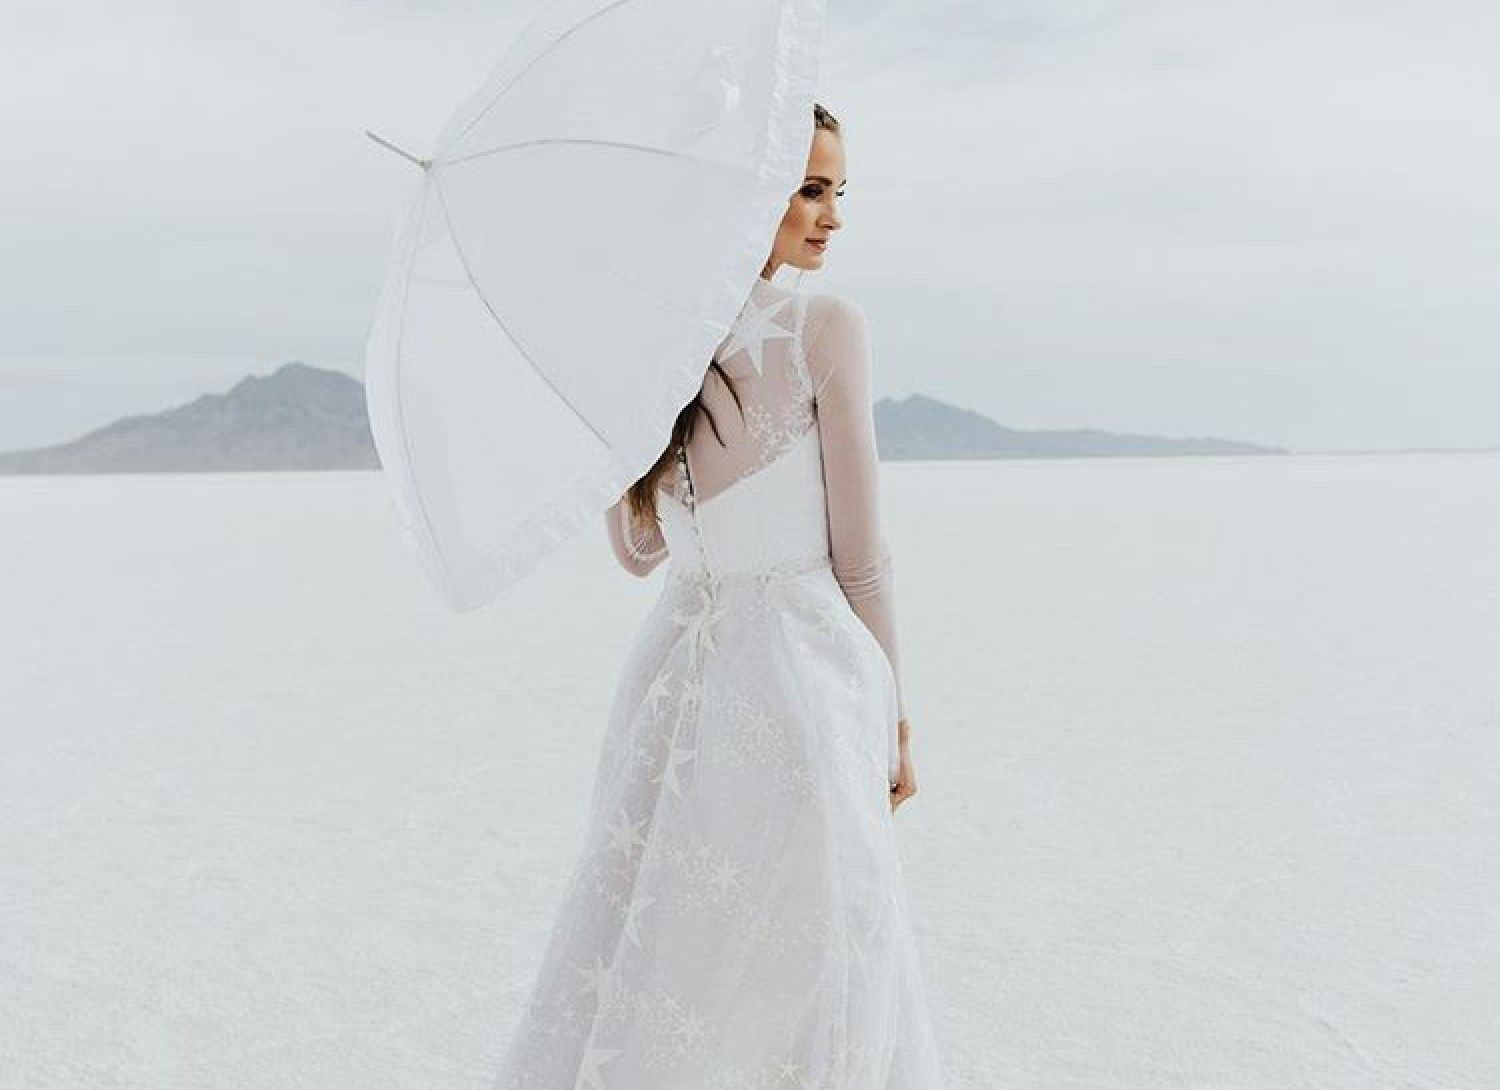 Model wearing a white wedding dress